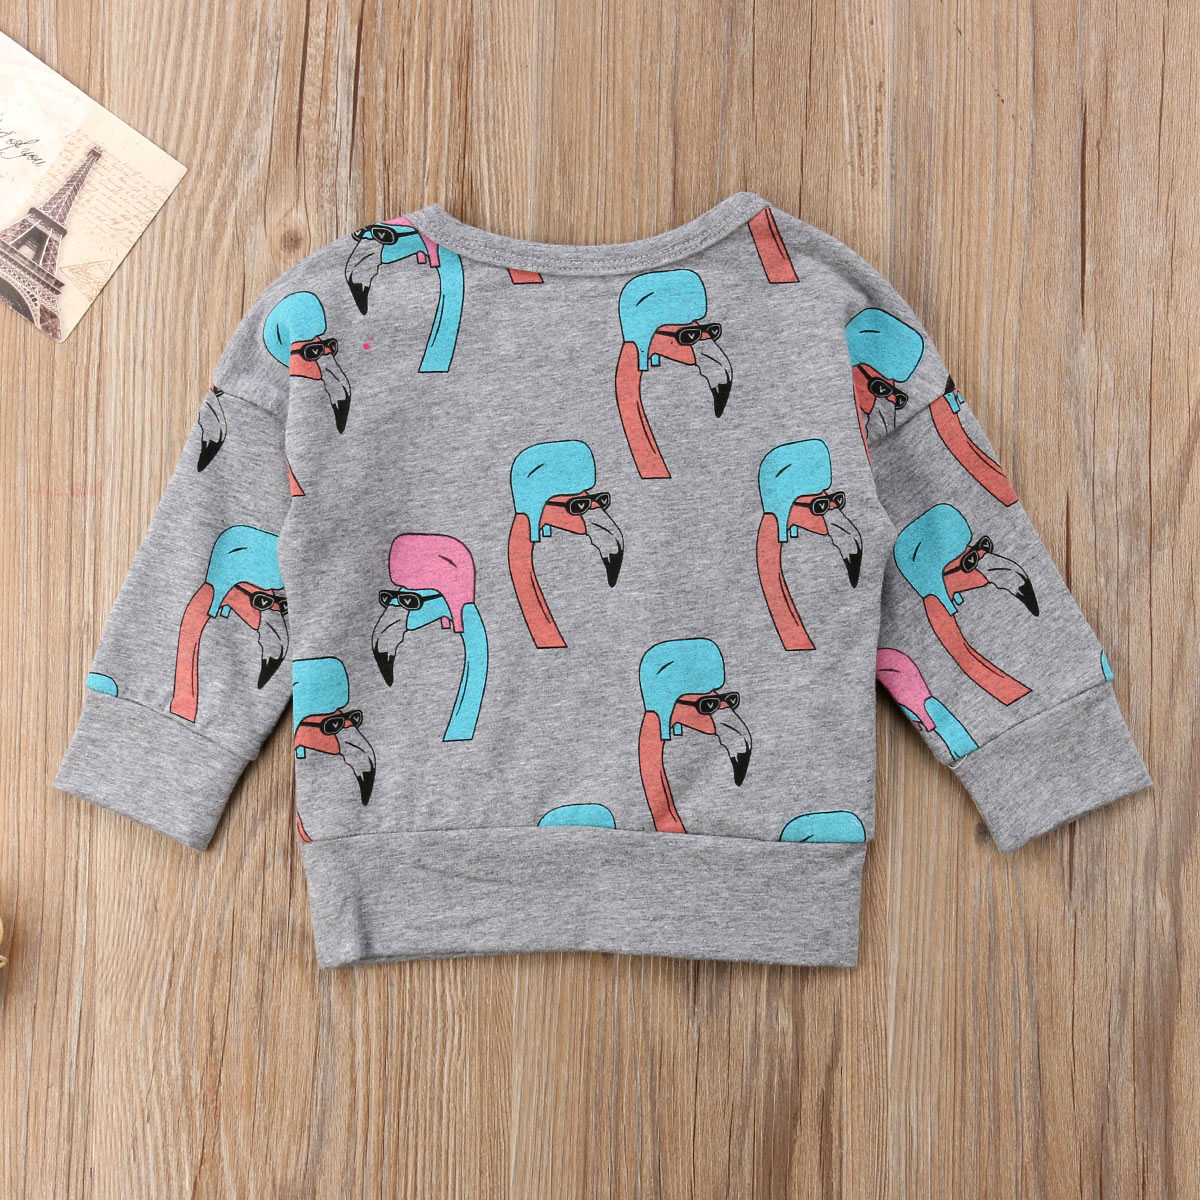 Arvore De Natal Real Full Tops New Baby 6m-5y Sleeve Autumn Flamingo Grey Brand Helm Toddler Sweatshirts Spring 2018 Outfit